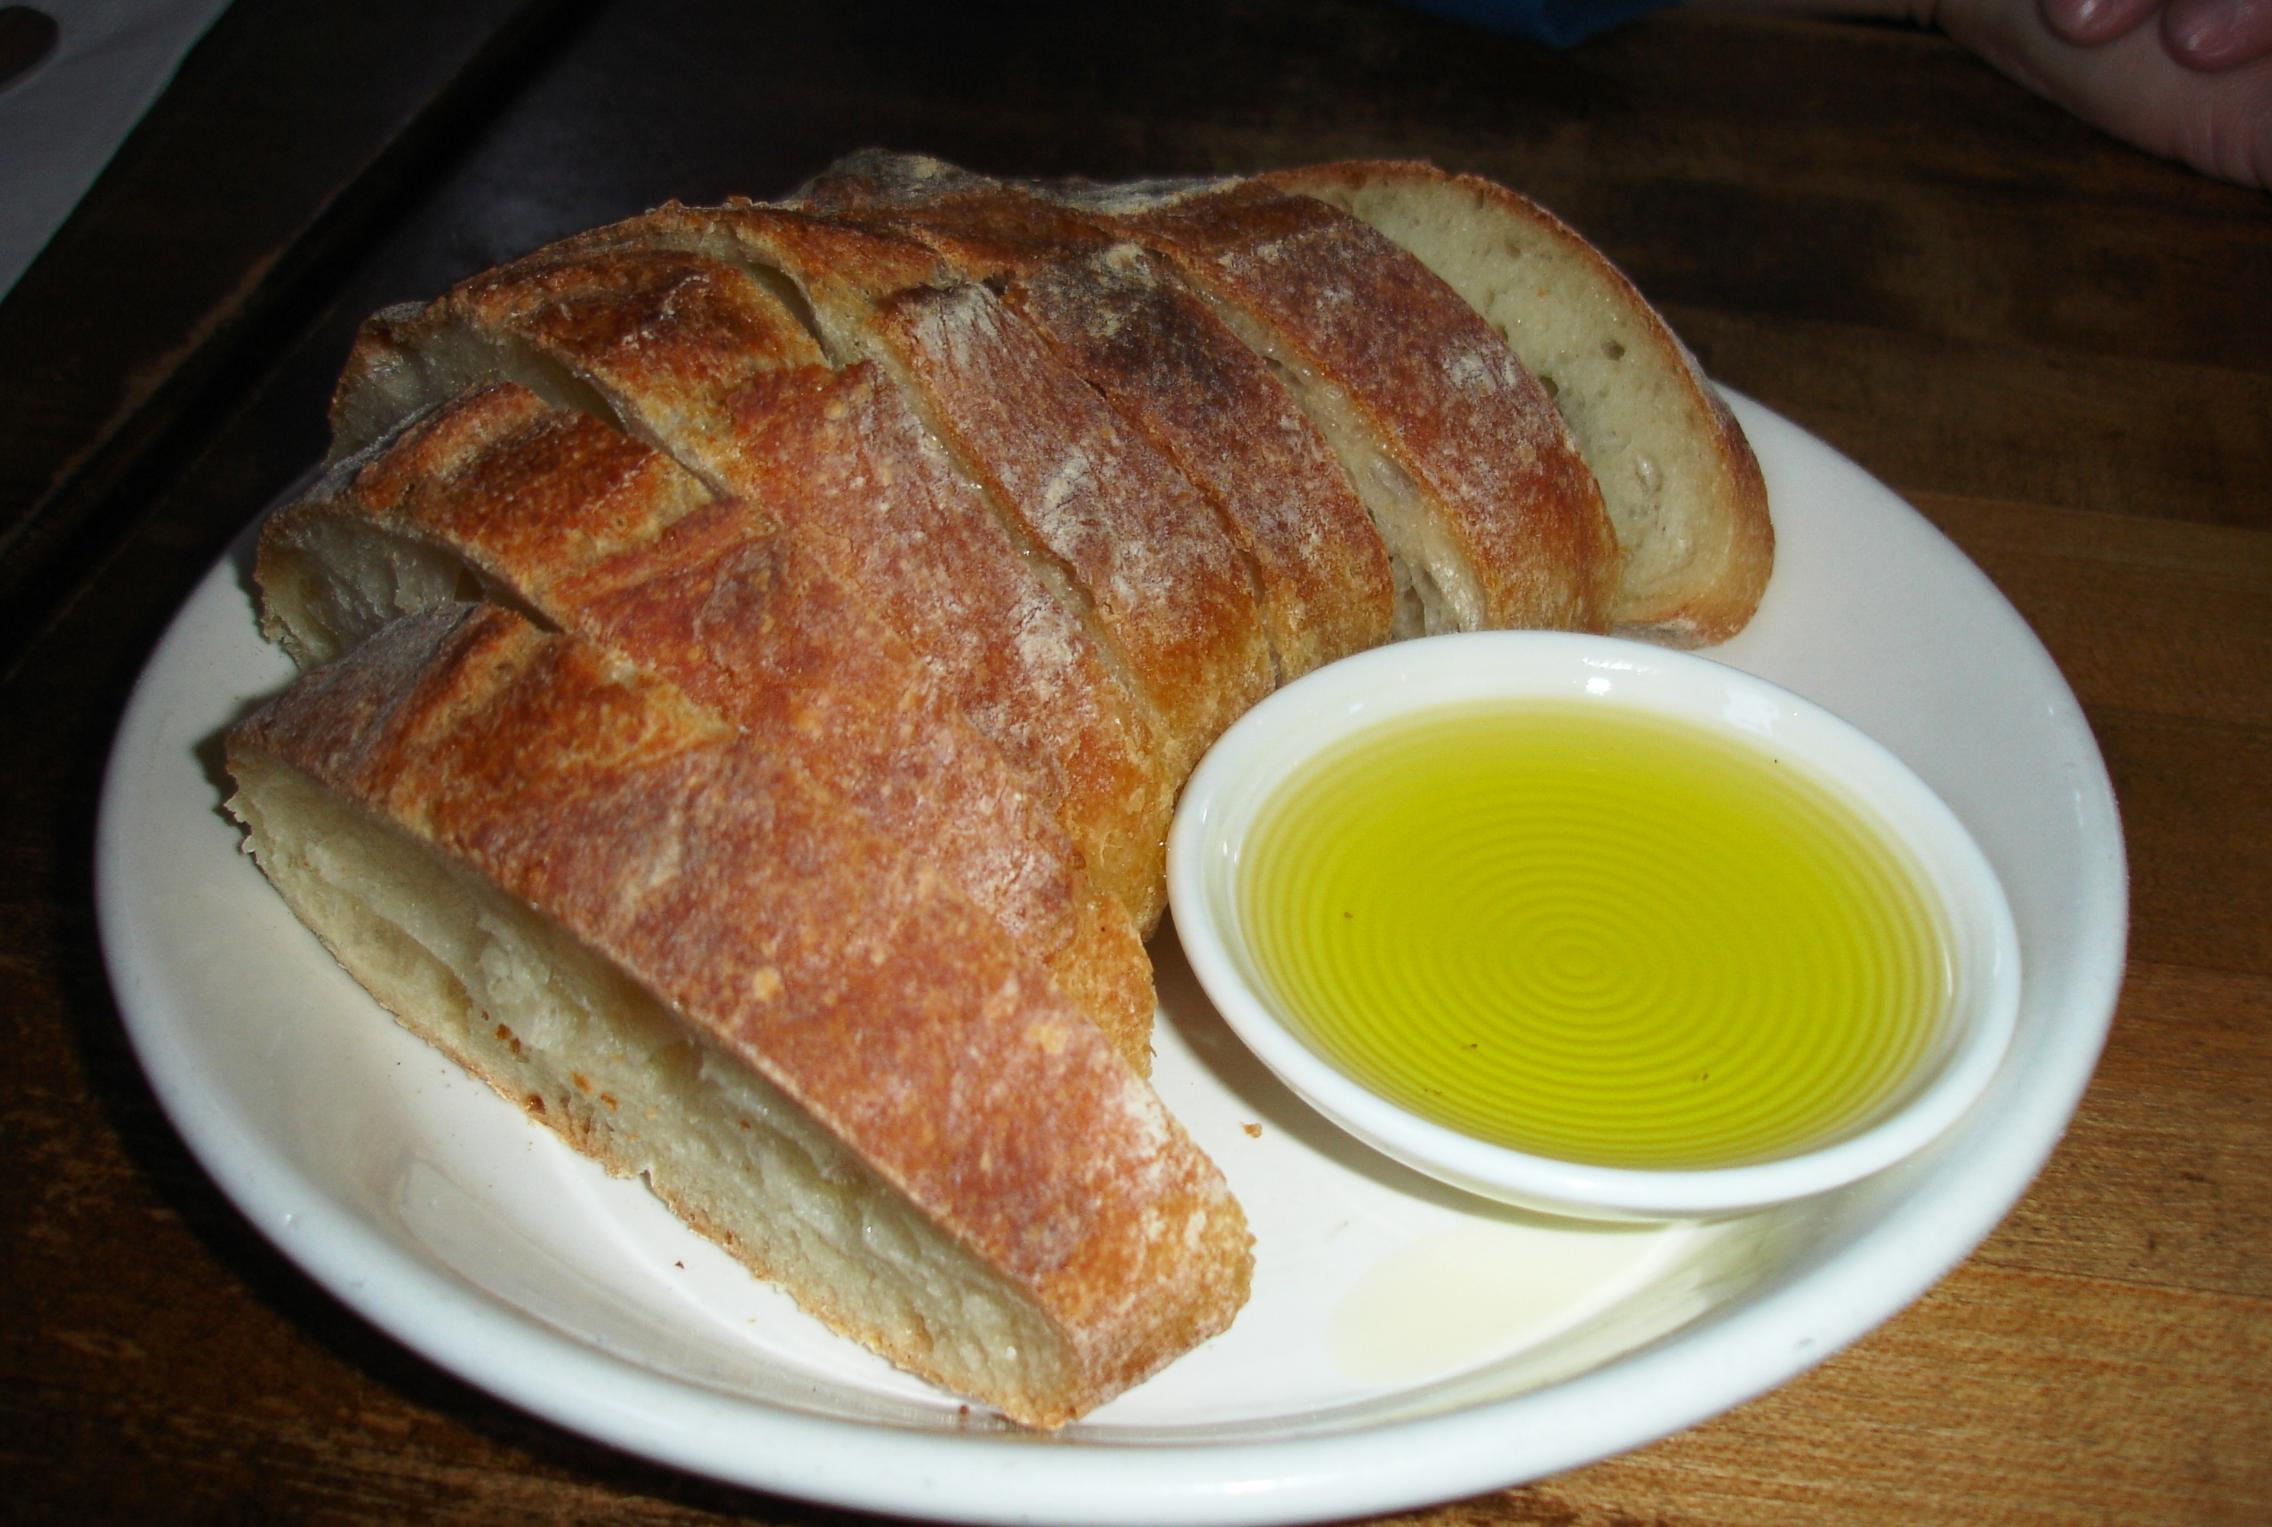 Slices of the house-made country bread are served with appetizers. The olive oil, by the way, is buttery and fruity.